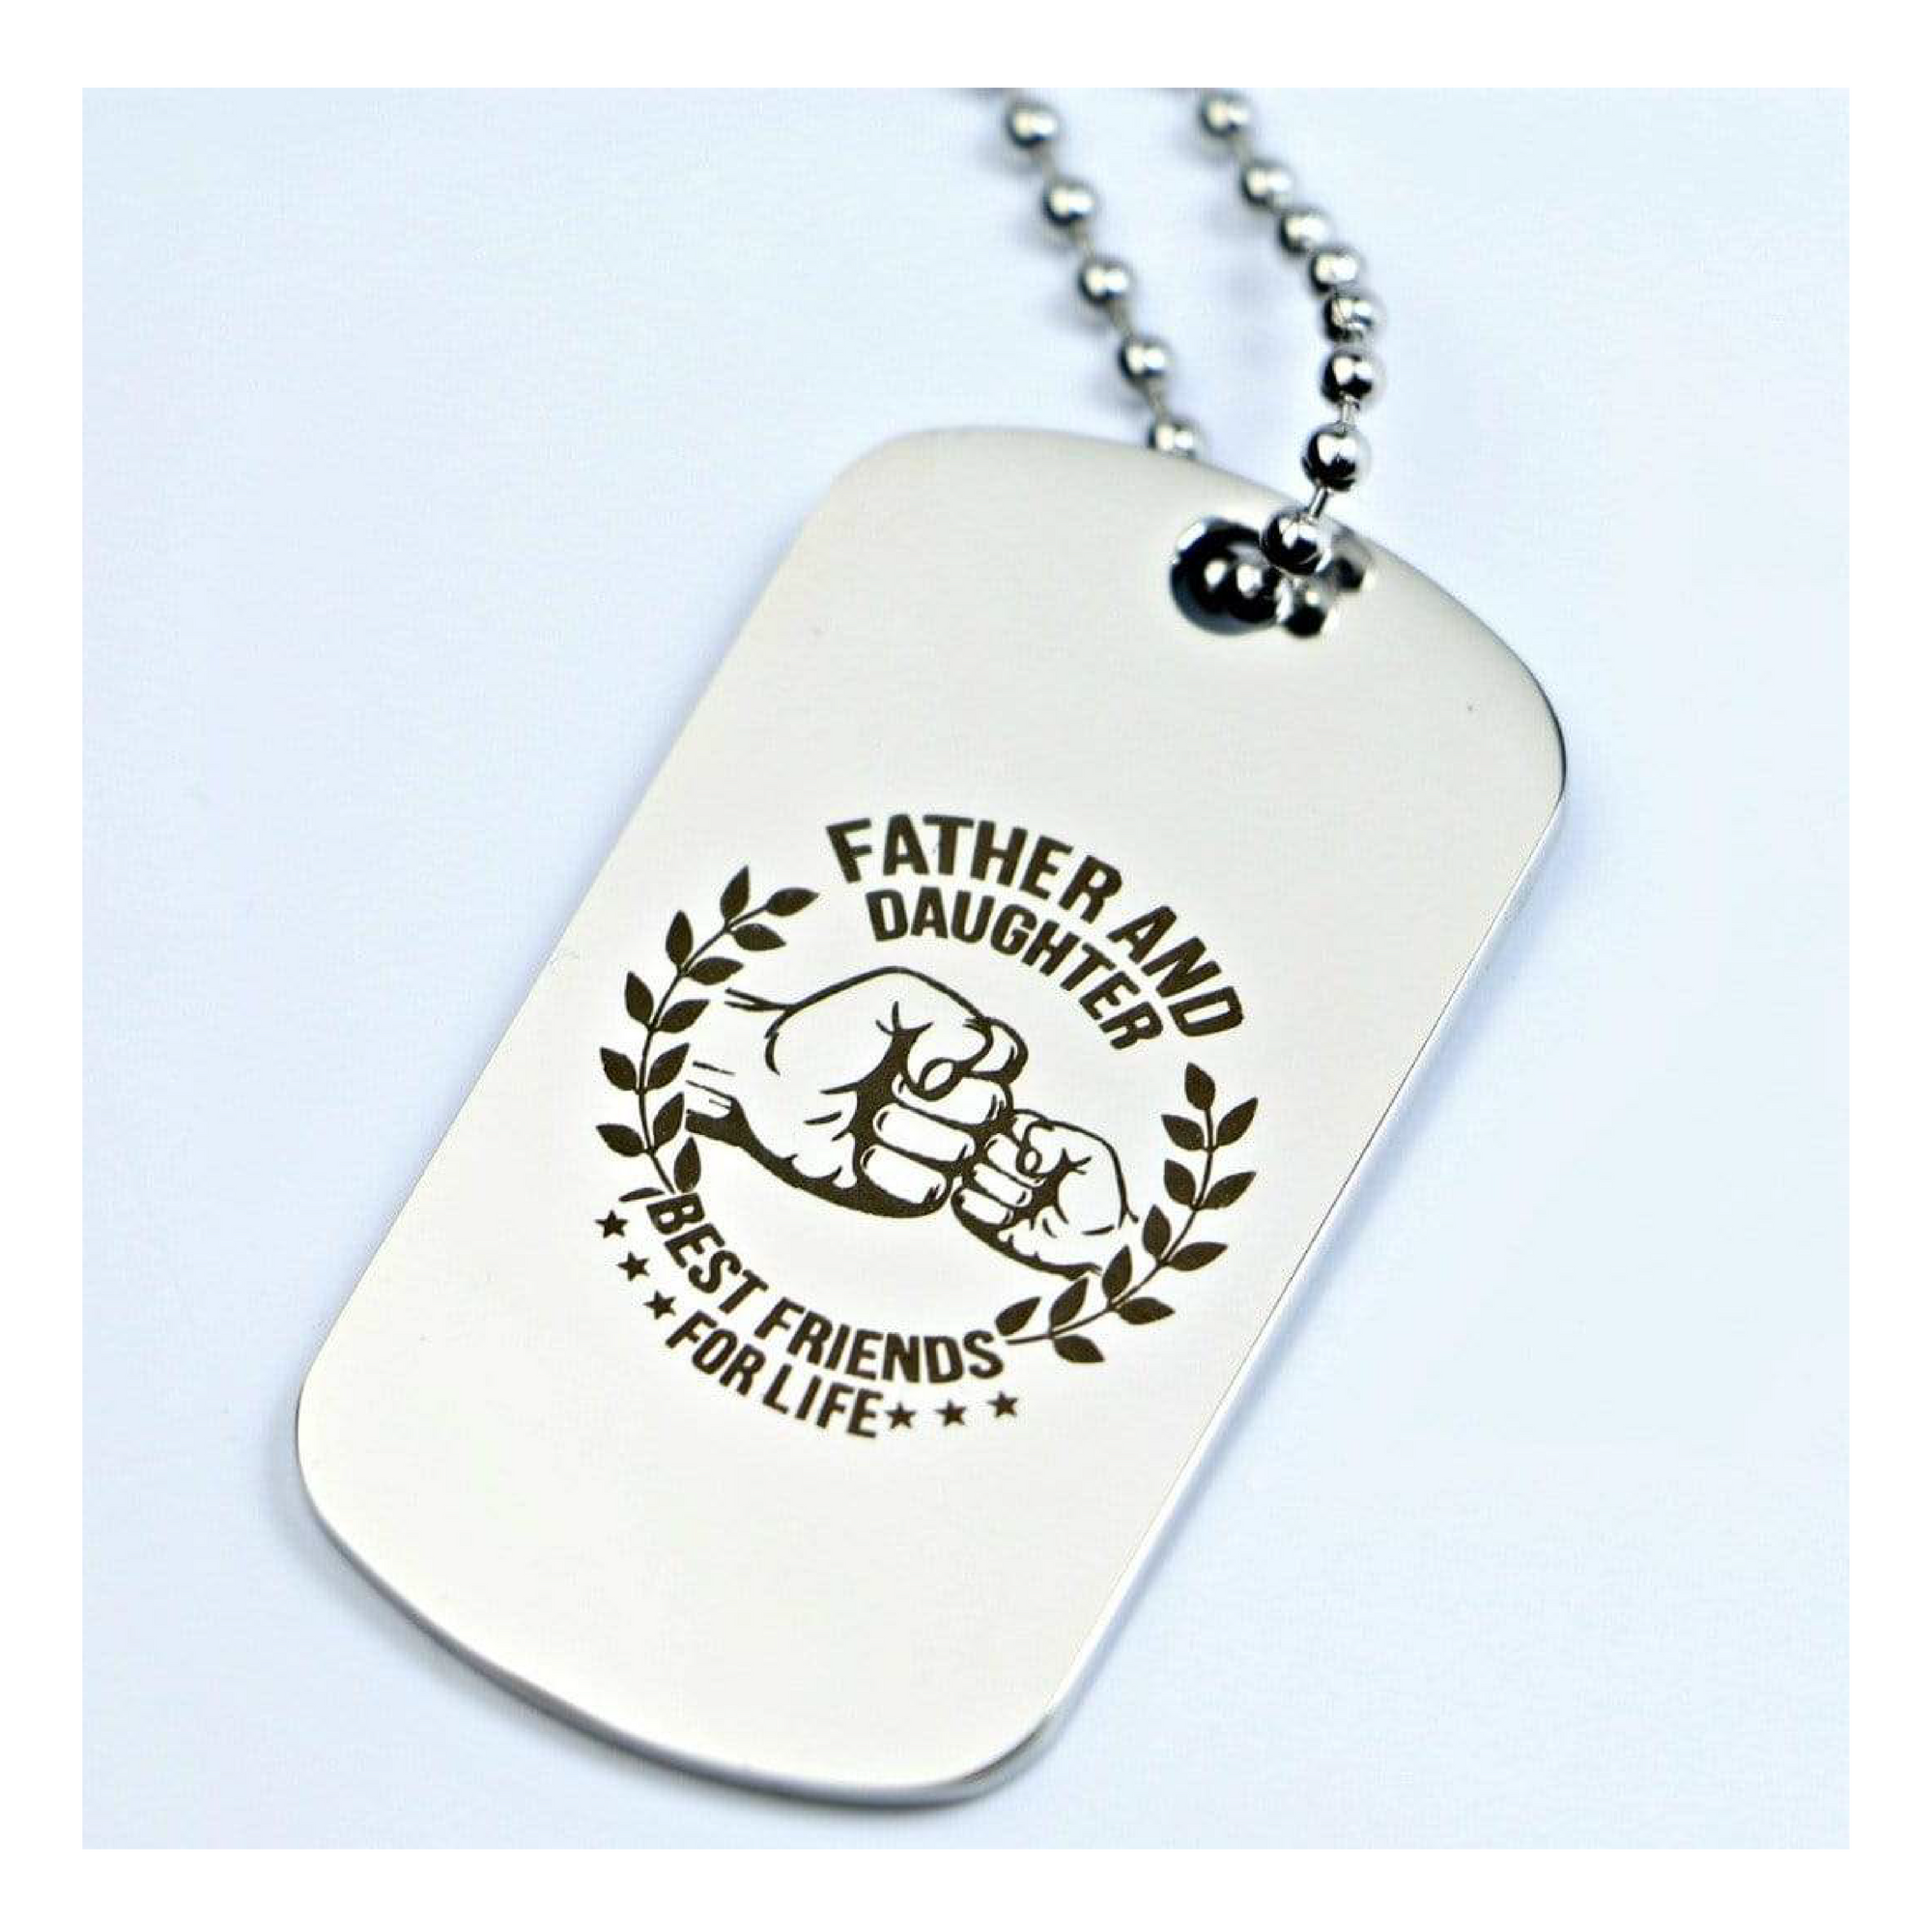 Father And Daughter Best Friends Dog Tag